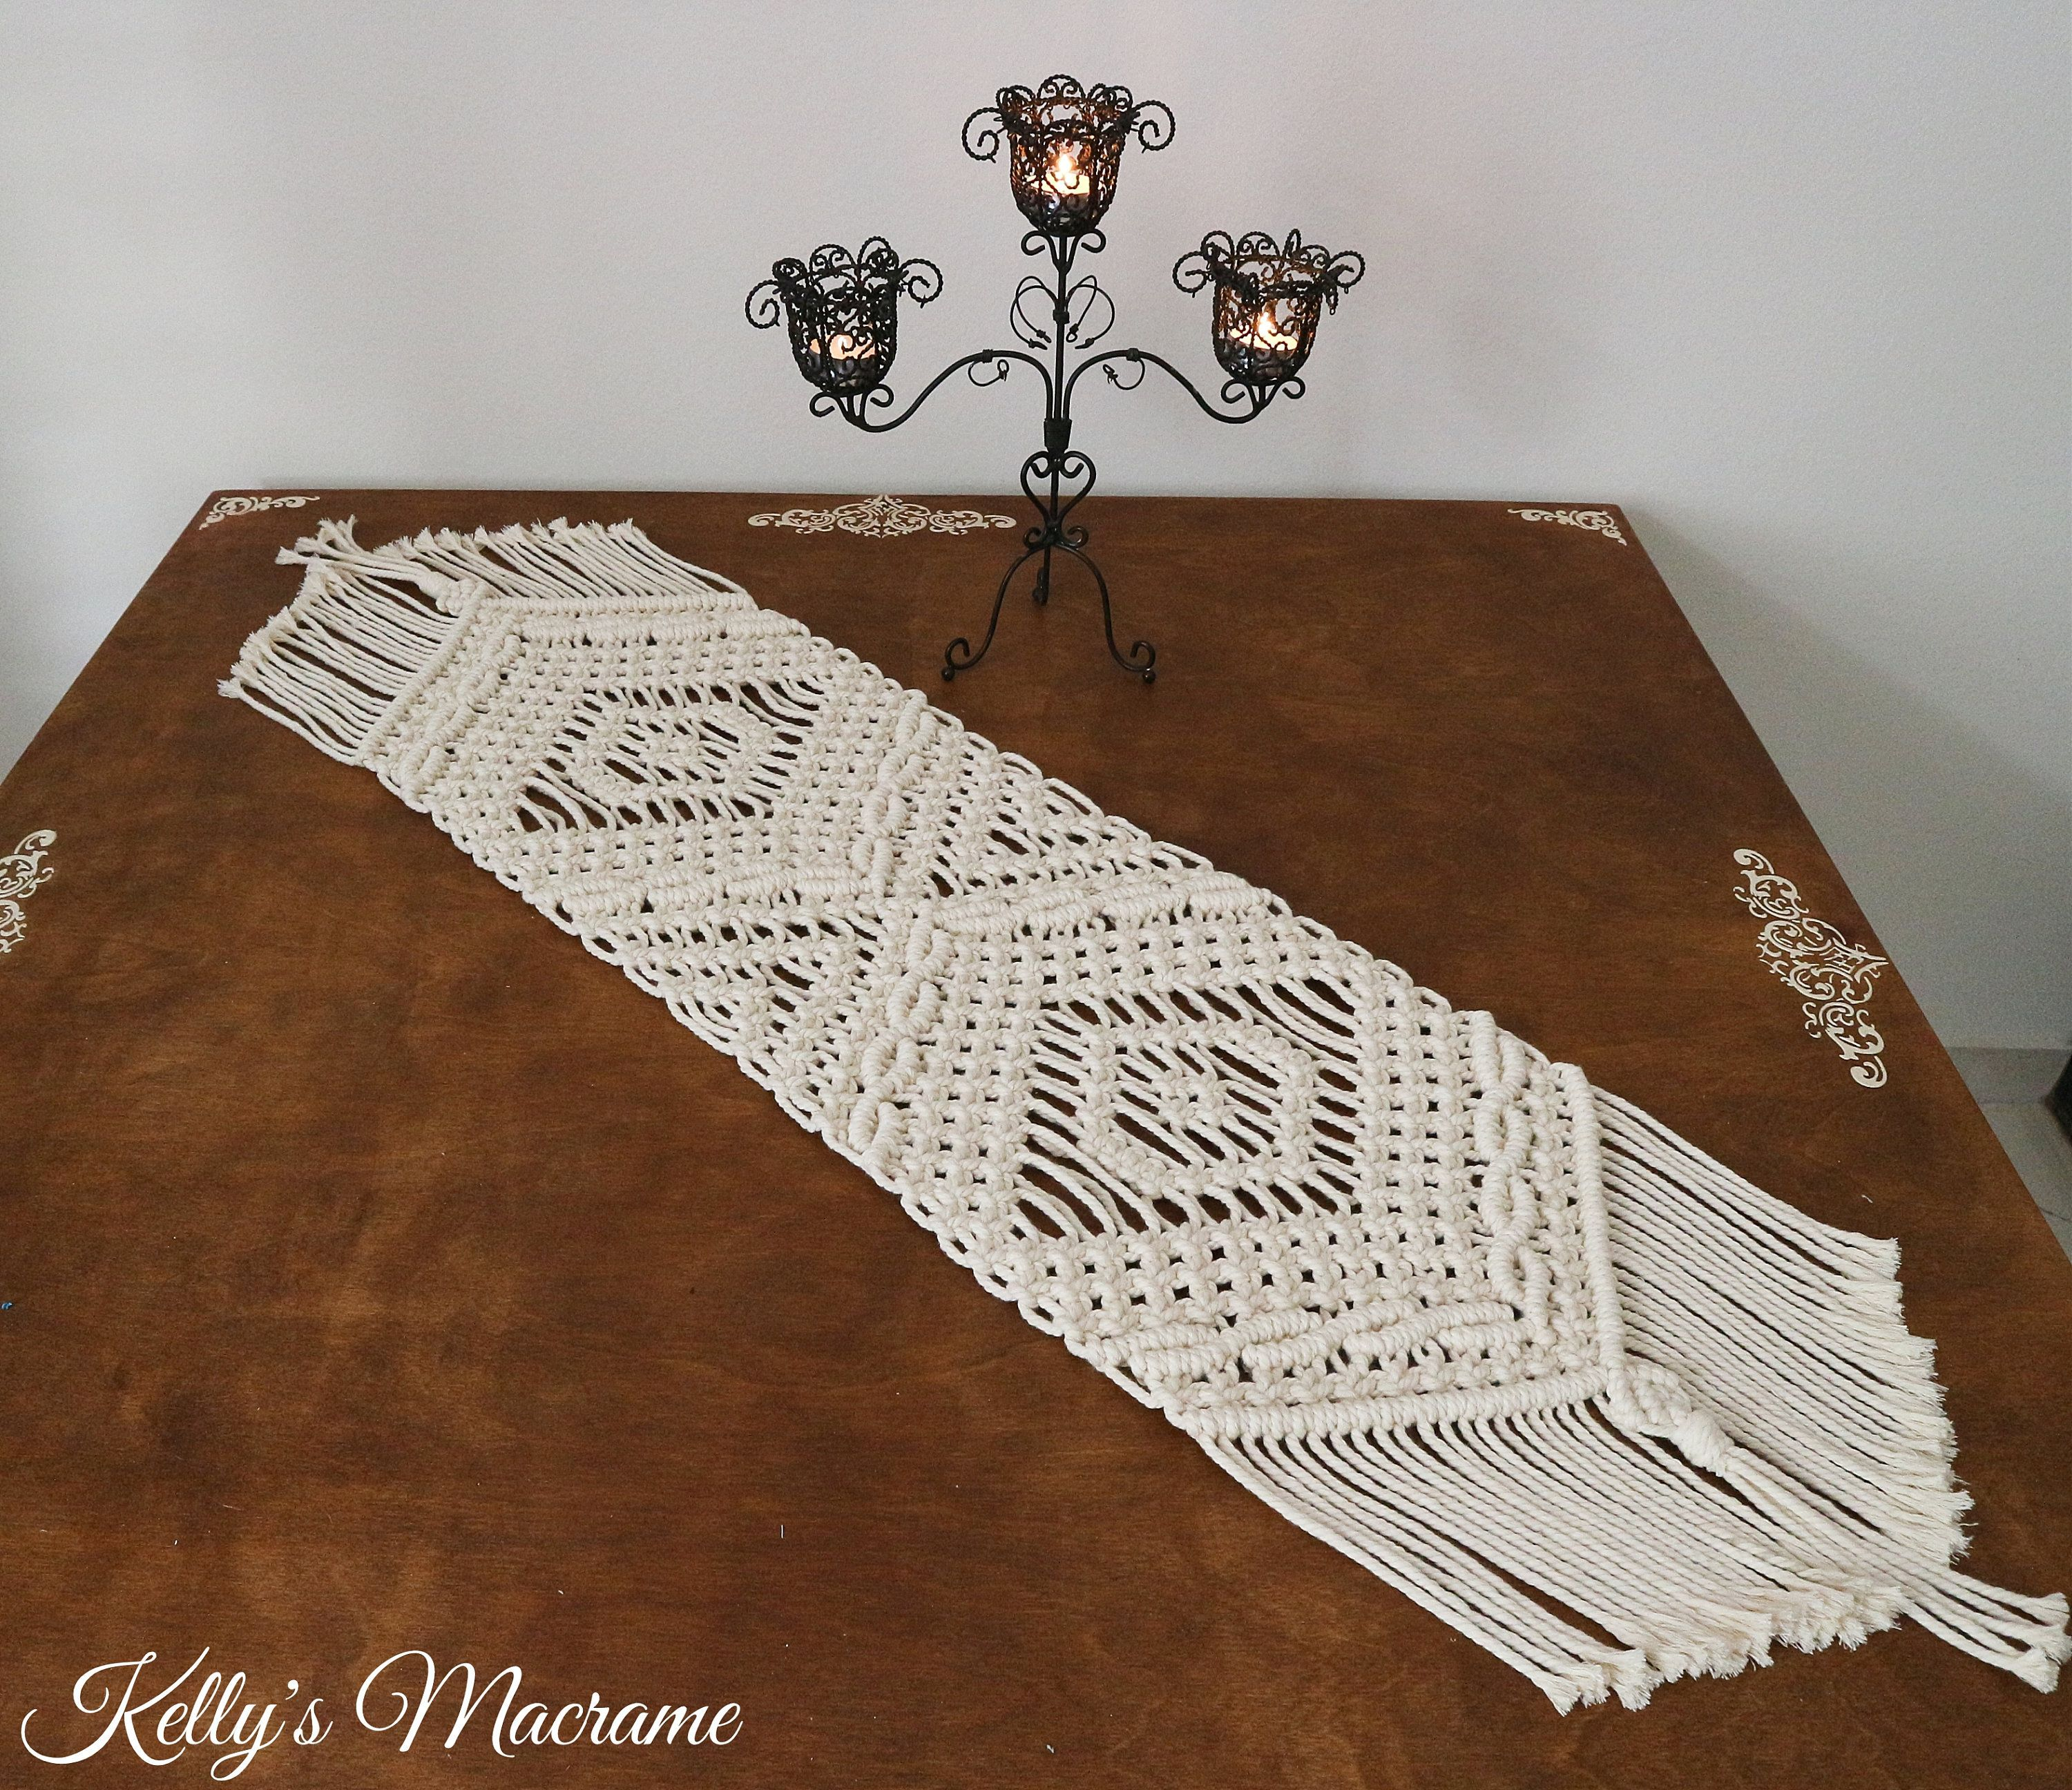 "Kelly's Macrame Table Runner ""Athena"", Home Decor, Table decor, Boho Style, Traditional Style, Modern, Wedding, Gift, Greek Designer."